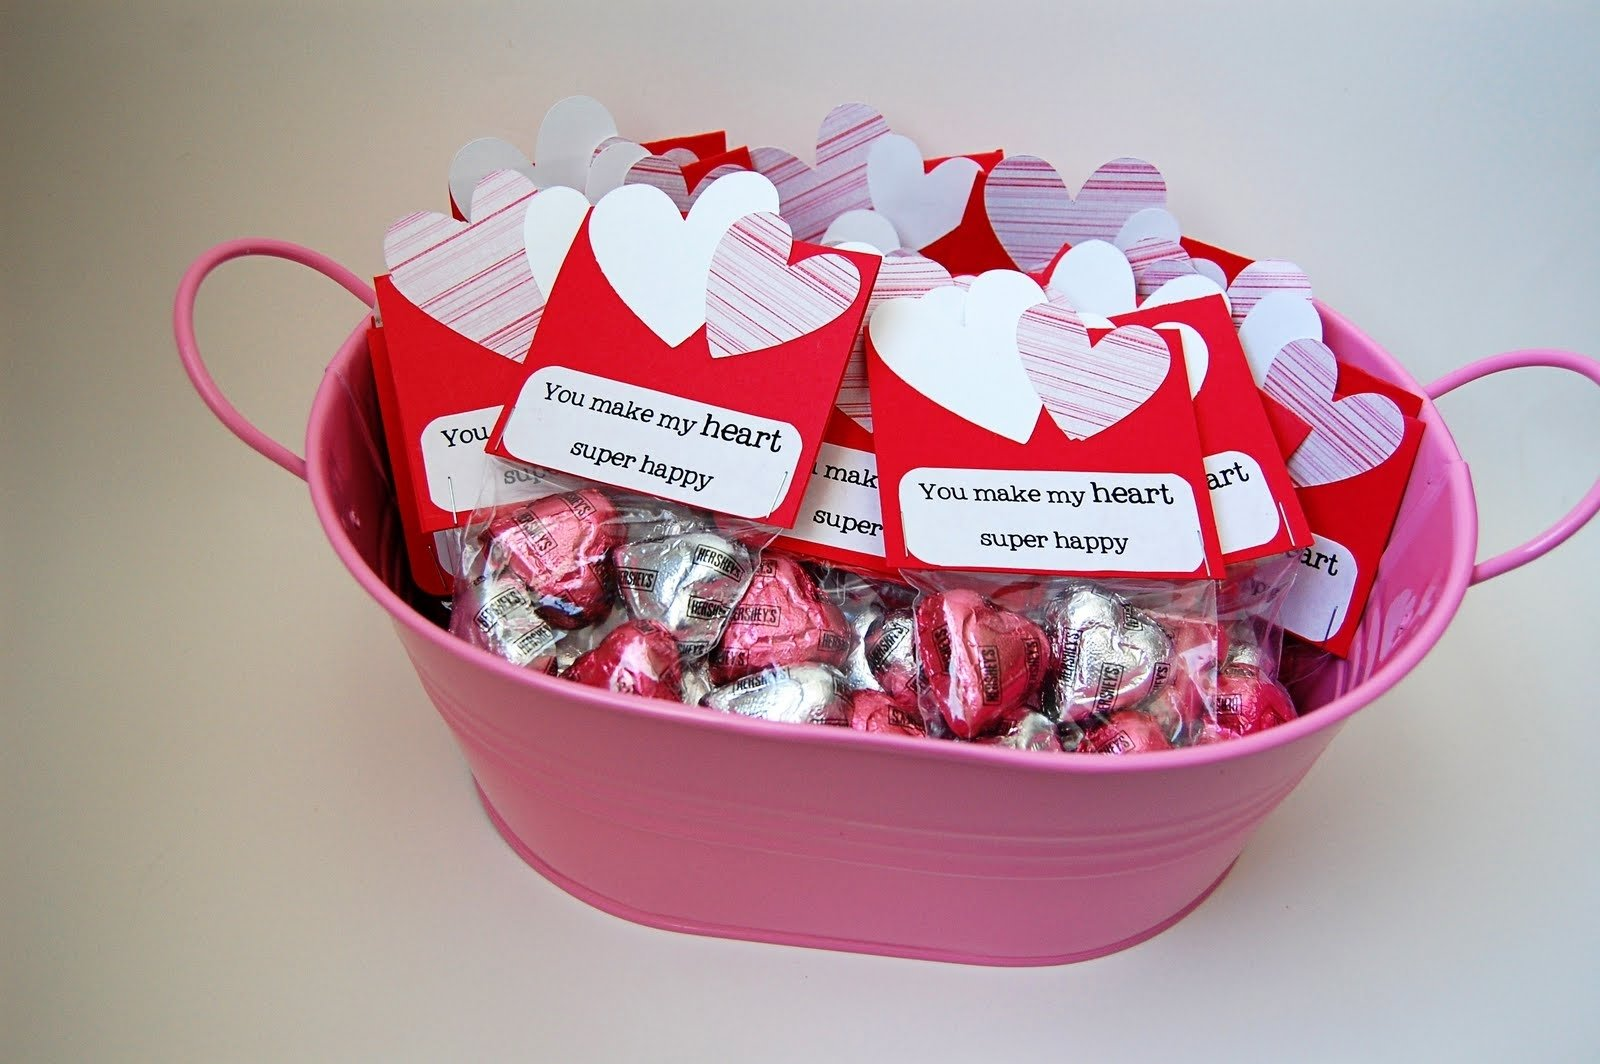 10 Spectacular Valentine Date Ideas For Her 45 homemade valentines day gift ideas for him 2 2021